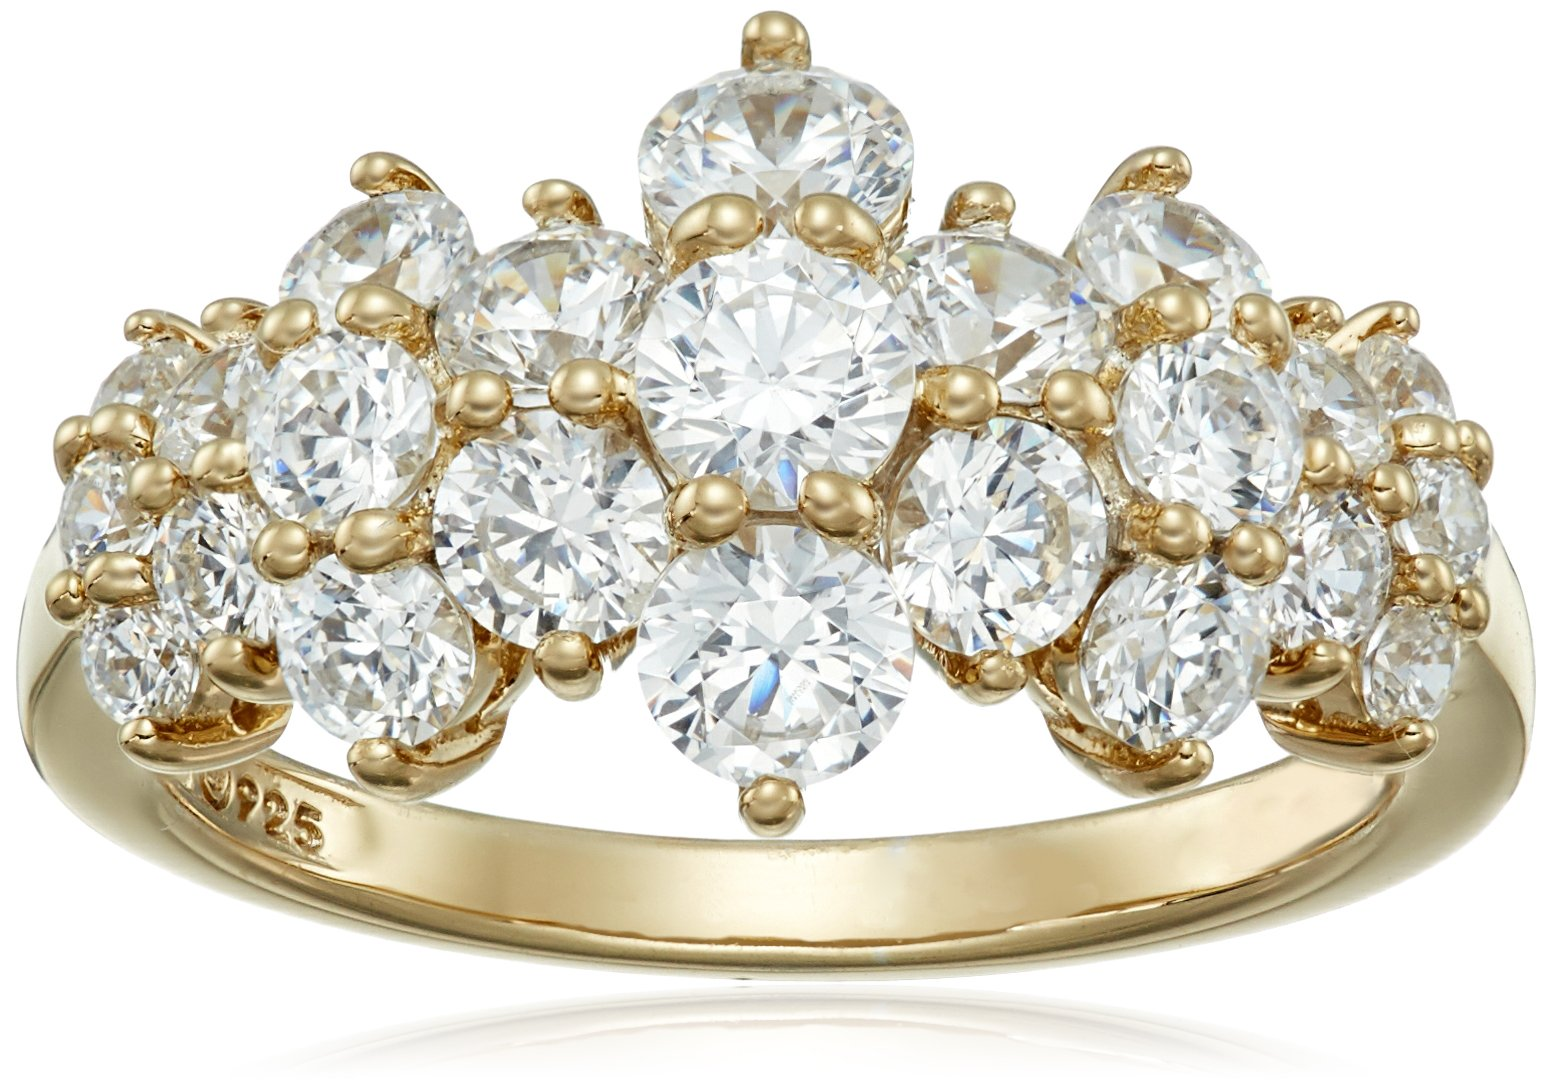 Yellow-Gold-Plated Sterling Silver Cluster Ring set with Round Cut Swarovski Zirconia (1.5 cttw), Size 8